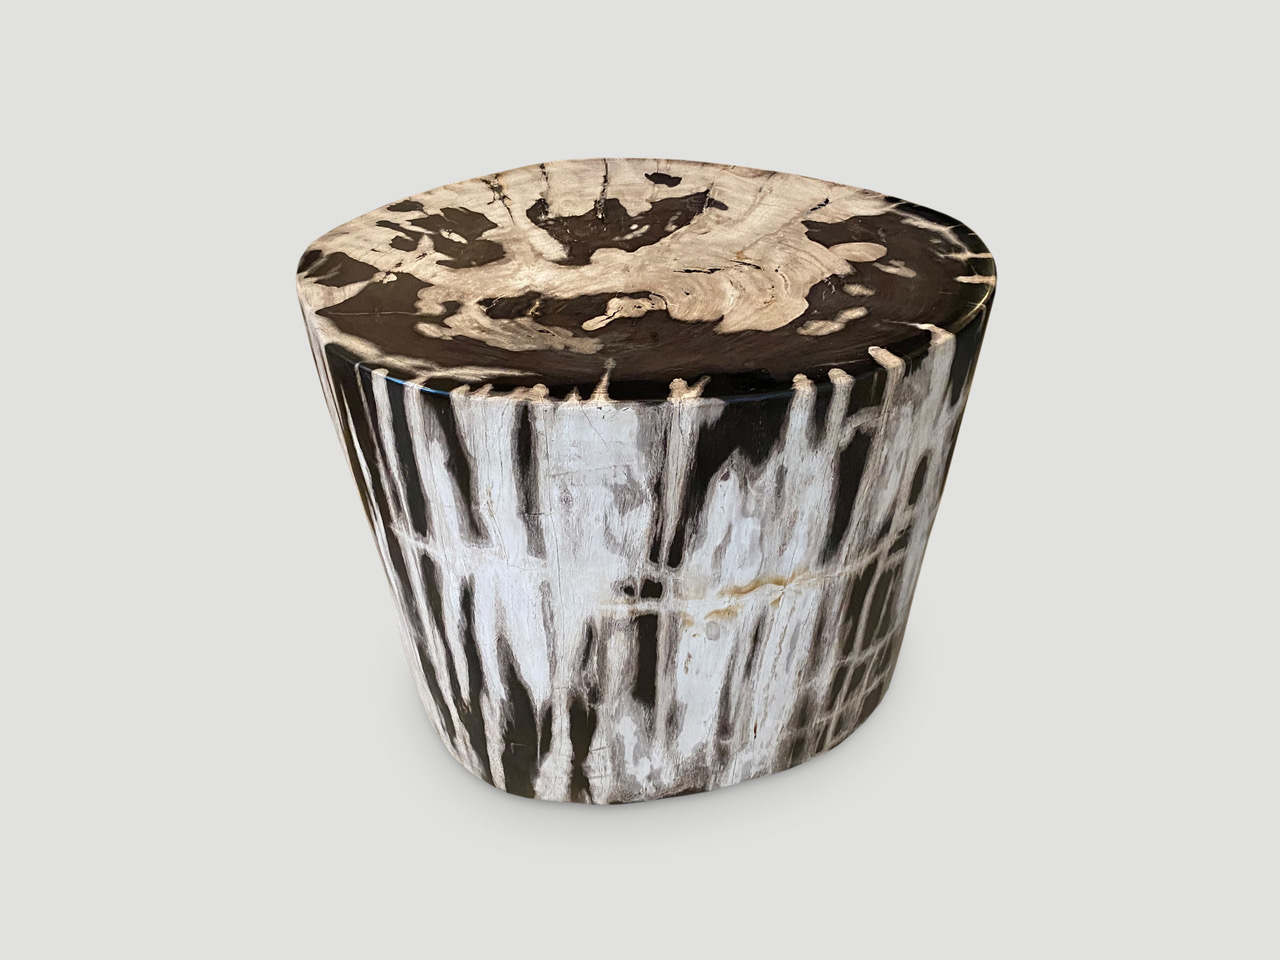 OVAL CONTRASTING TONED PETRIFIED WOOD SIDE TABLE